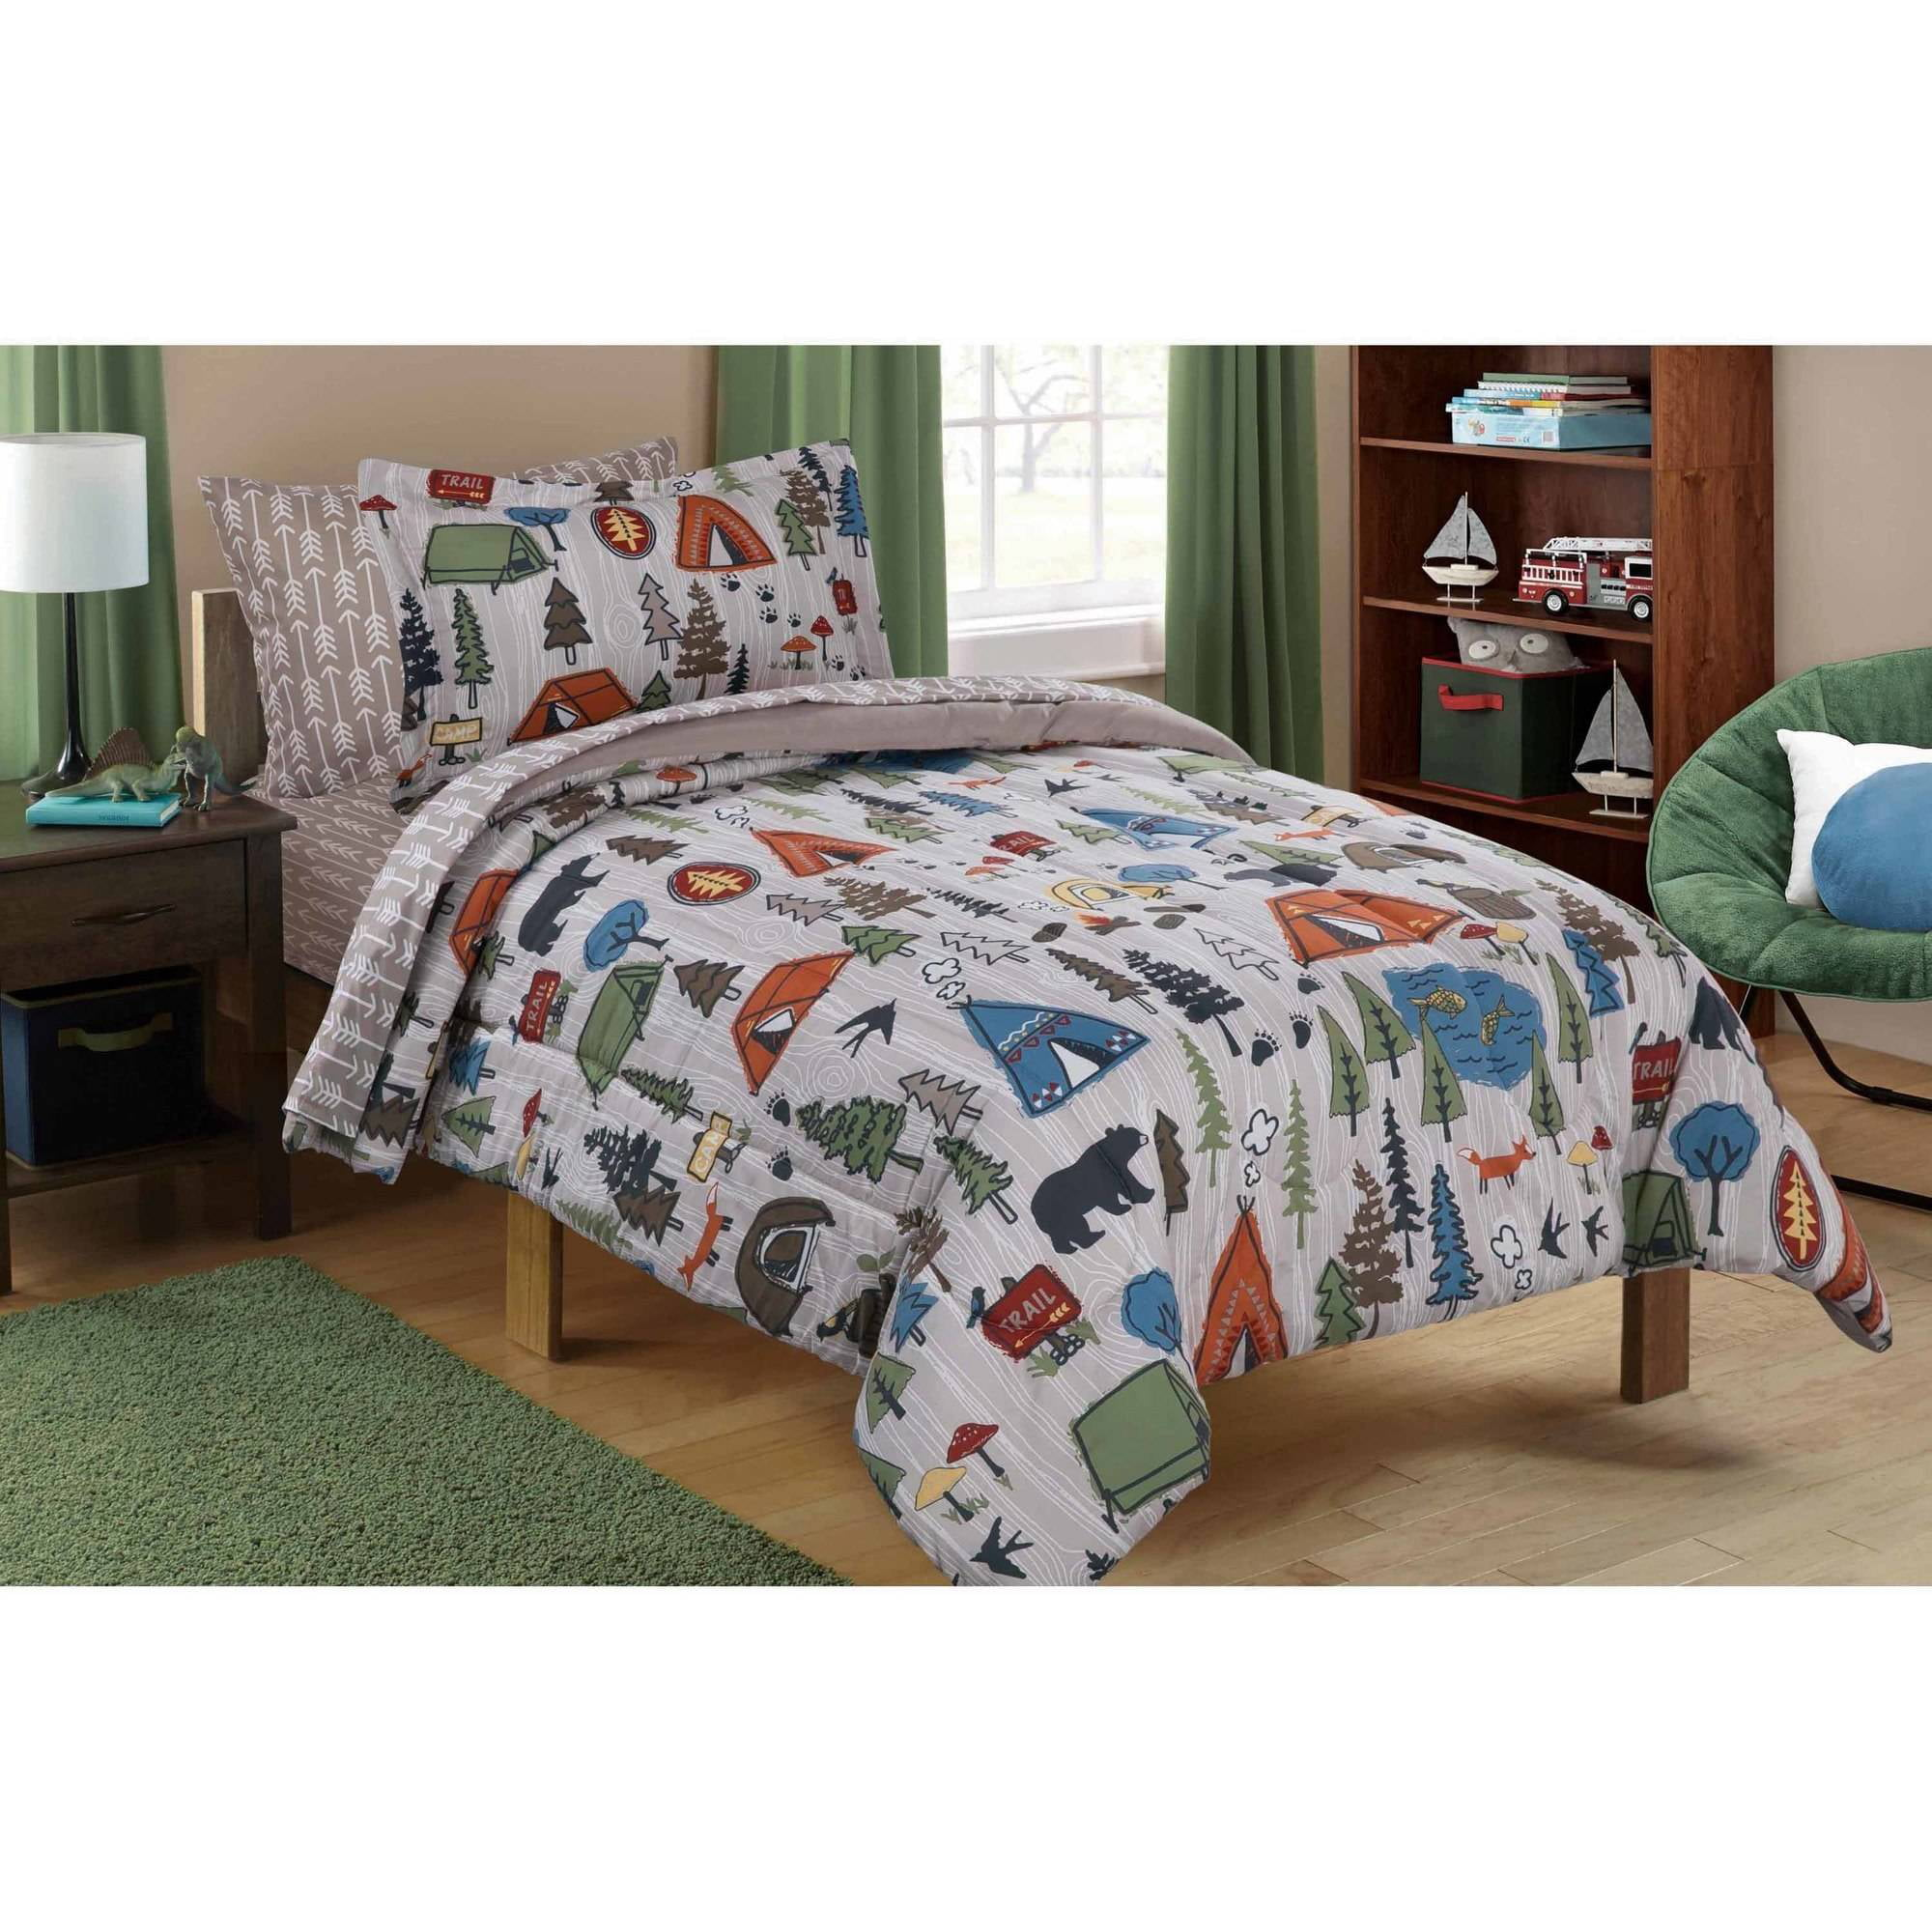 Mainstays Kids Camping Bed In A Bag Bedding Set   Walmart.com